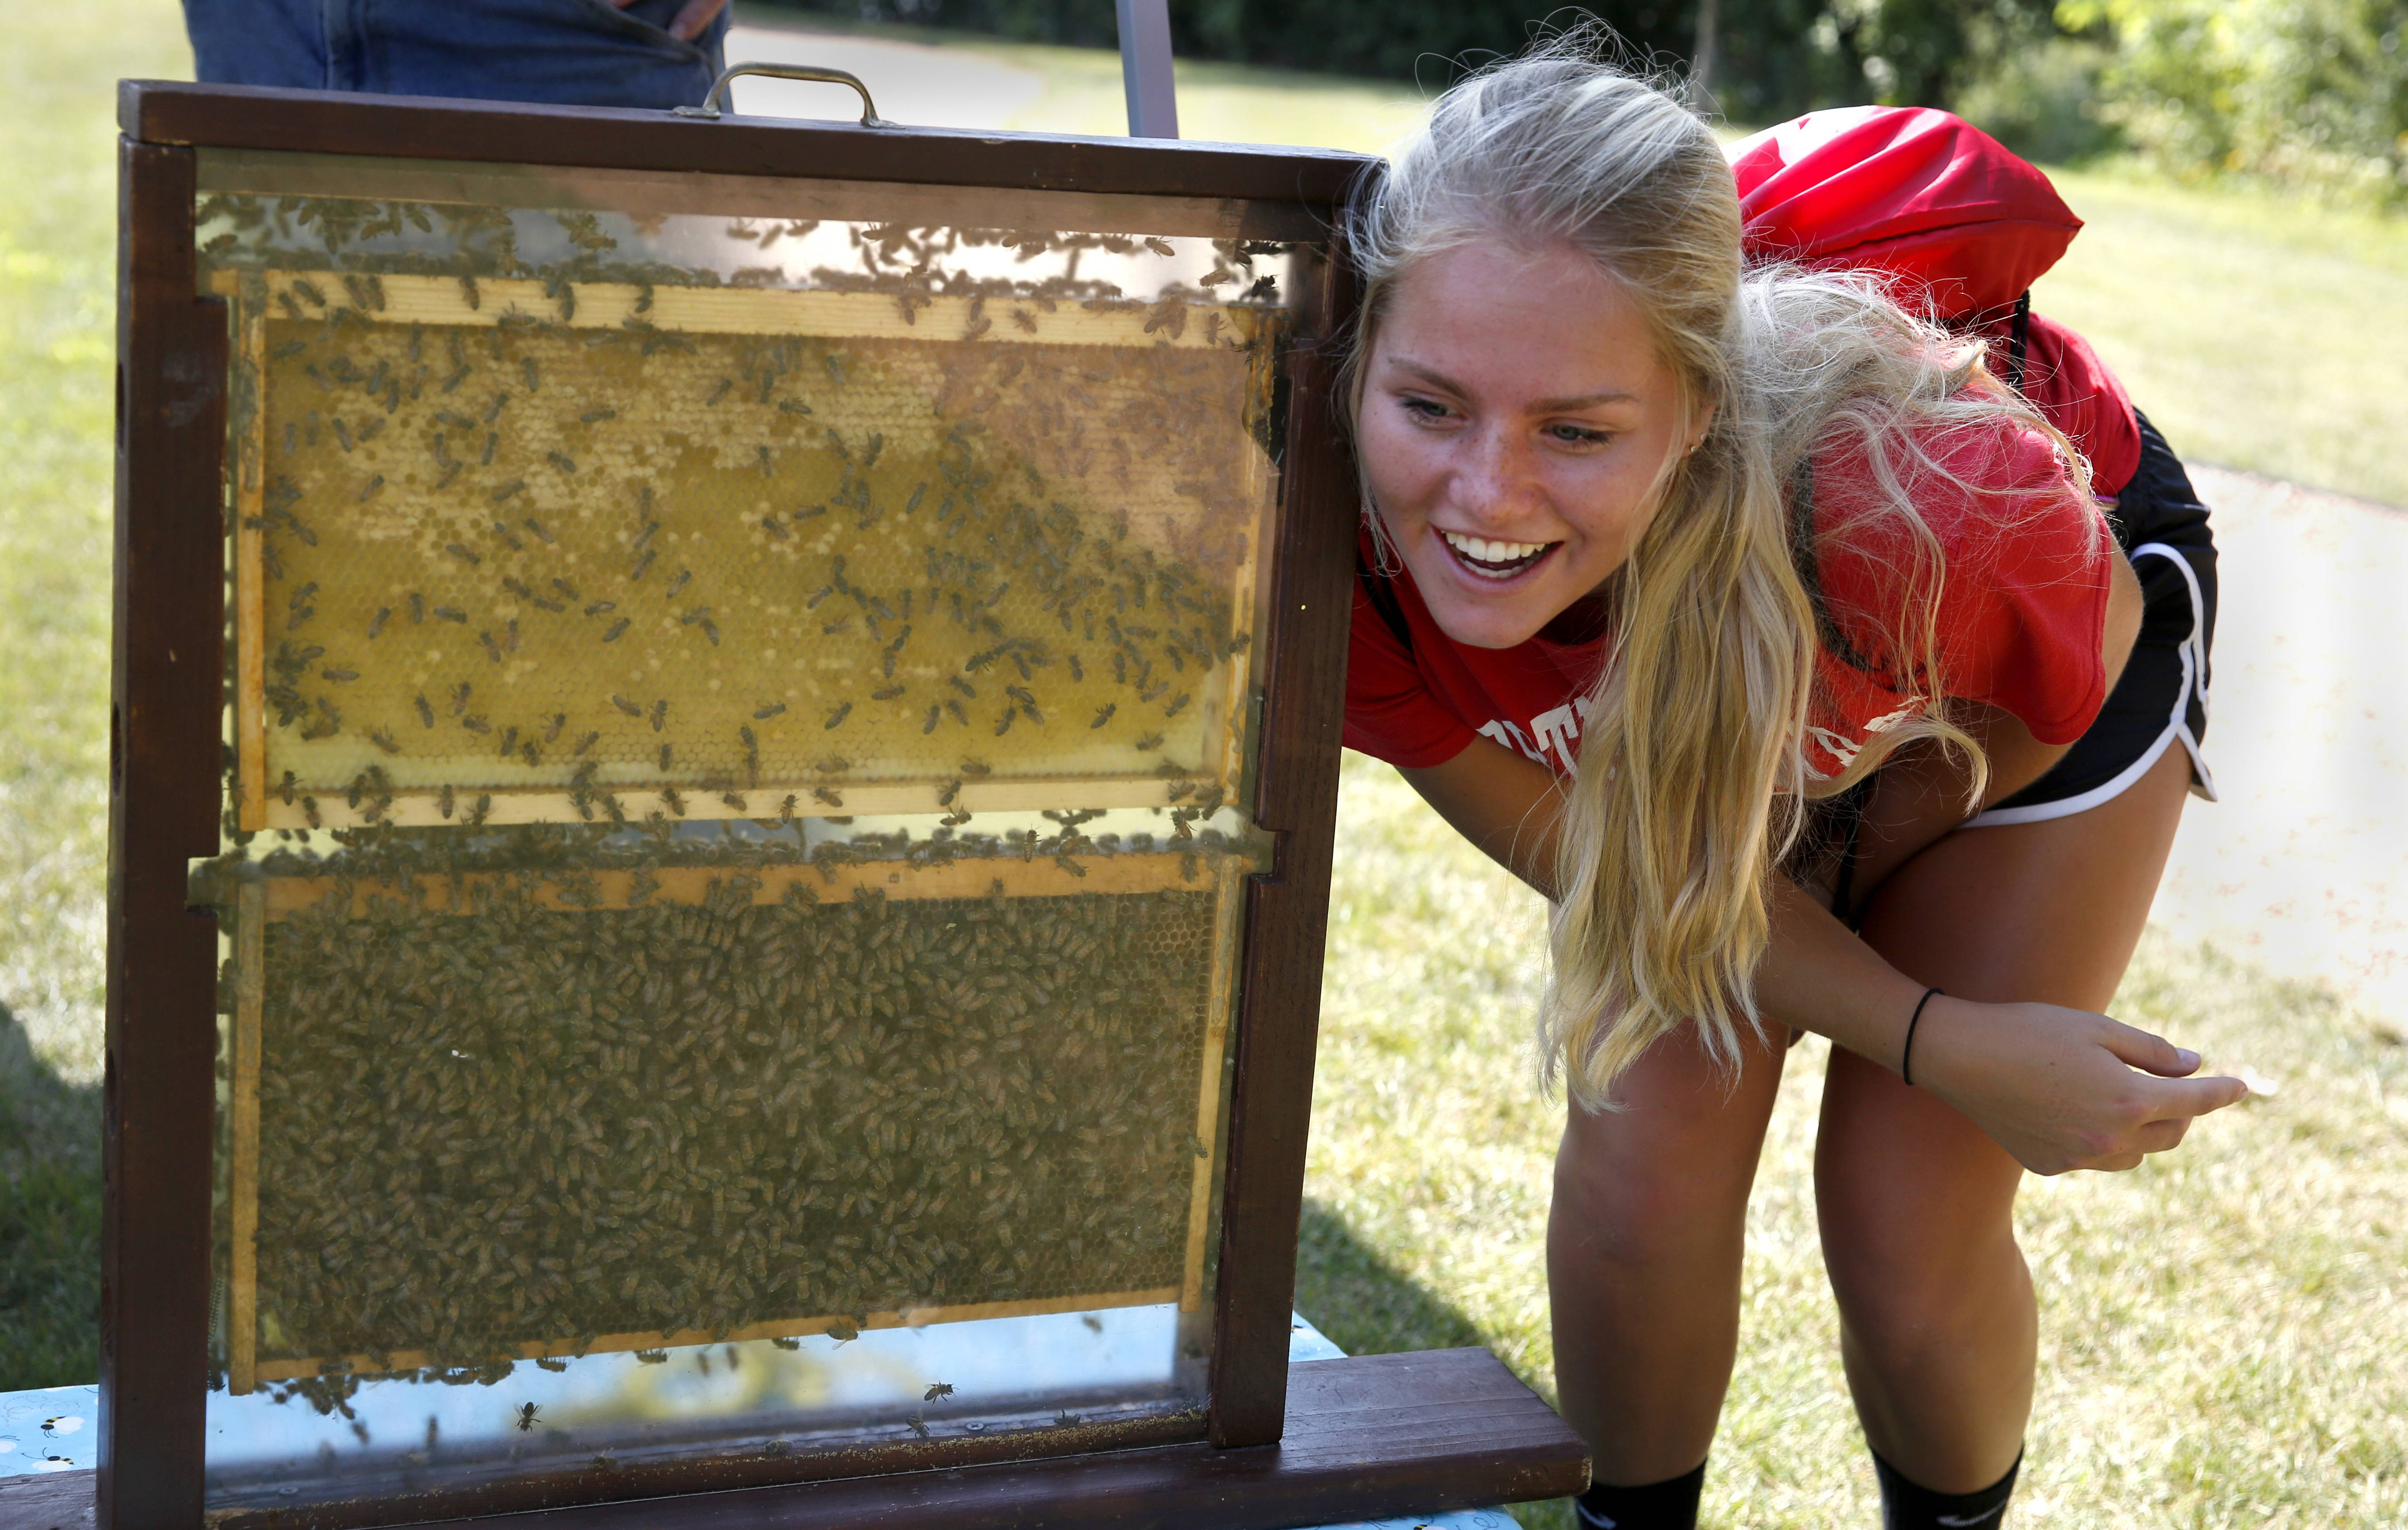 Rachel Daye, a student at North Central College, listens to the sound of Ed Bell's beehive. According to Bell, bees surround the queen, who lays 1,200 to 1,500 eggs per day. Bell, of Oswego, has been keeping bees for 11 years.